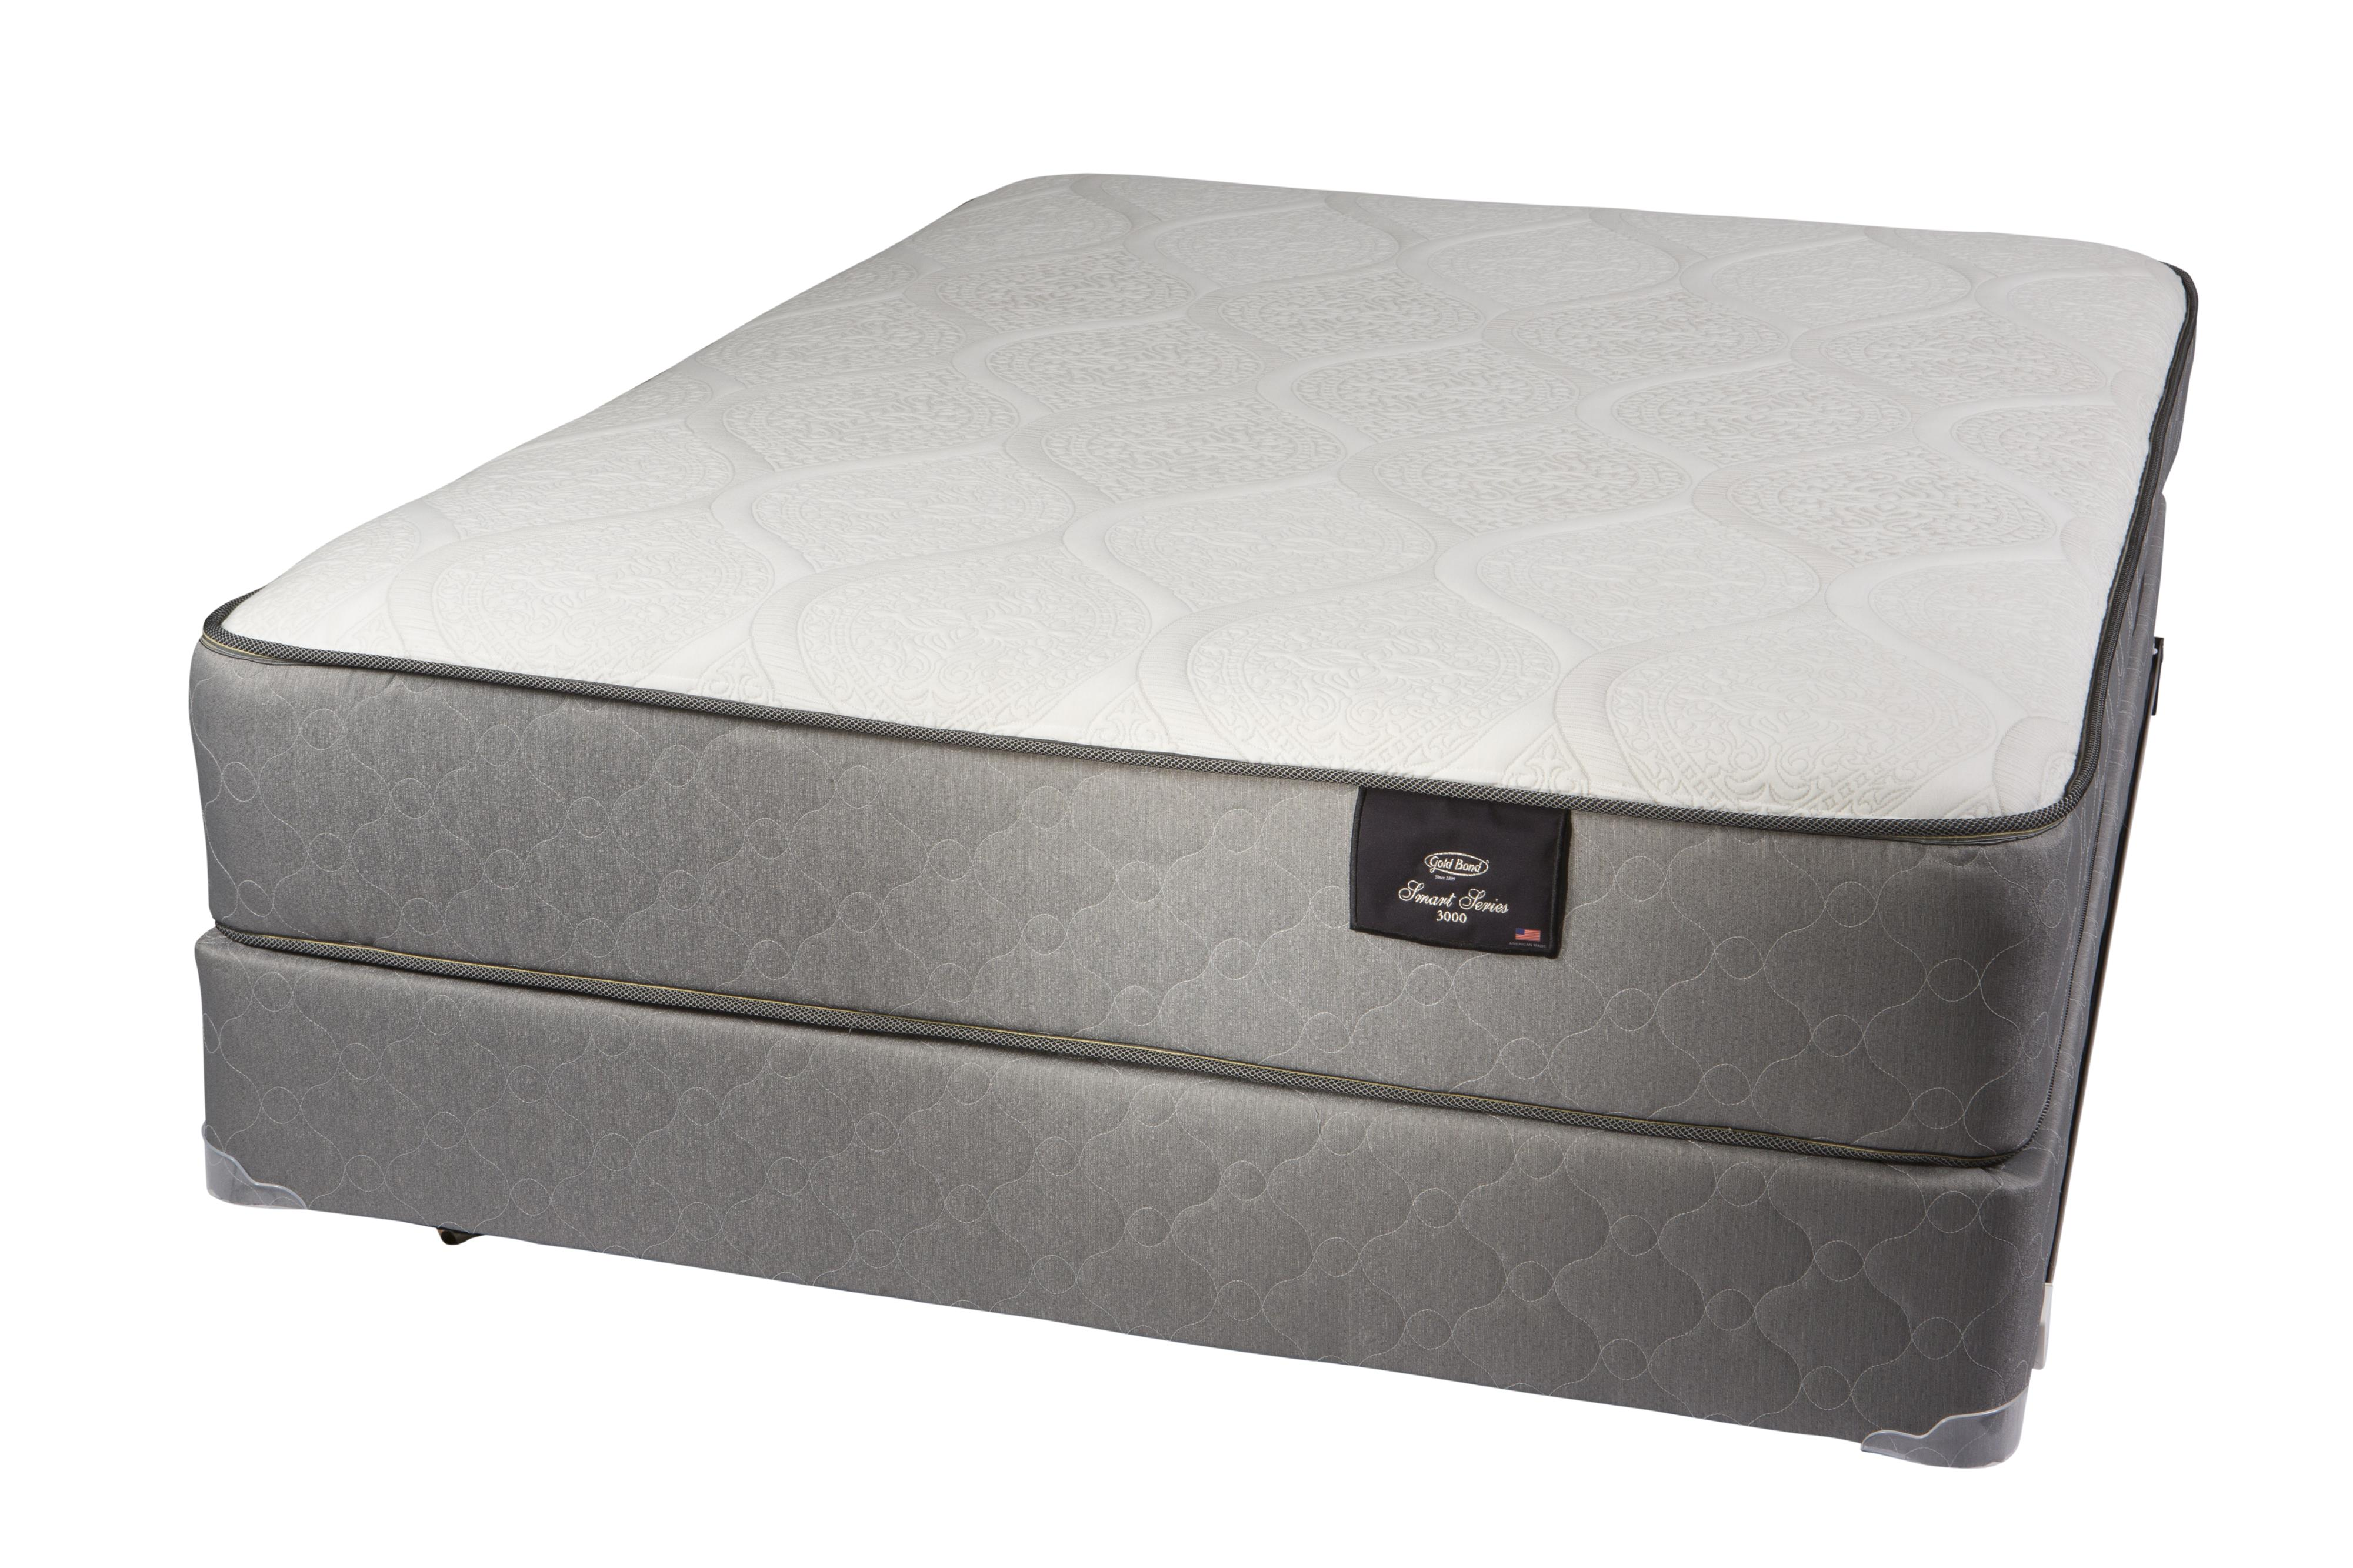 Smart Series 4500 Queen Hybrid Two Sided Mattress Set by Gold Bond Mattress Company at Beds N Stuff